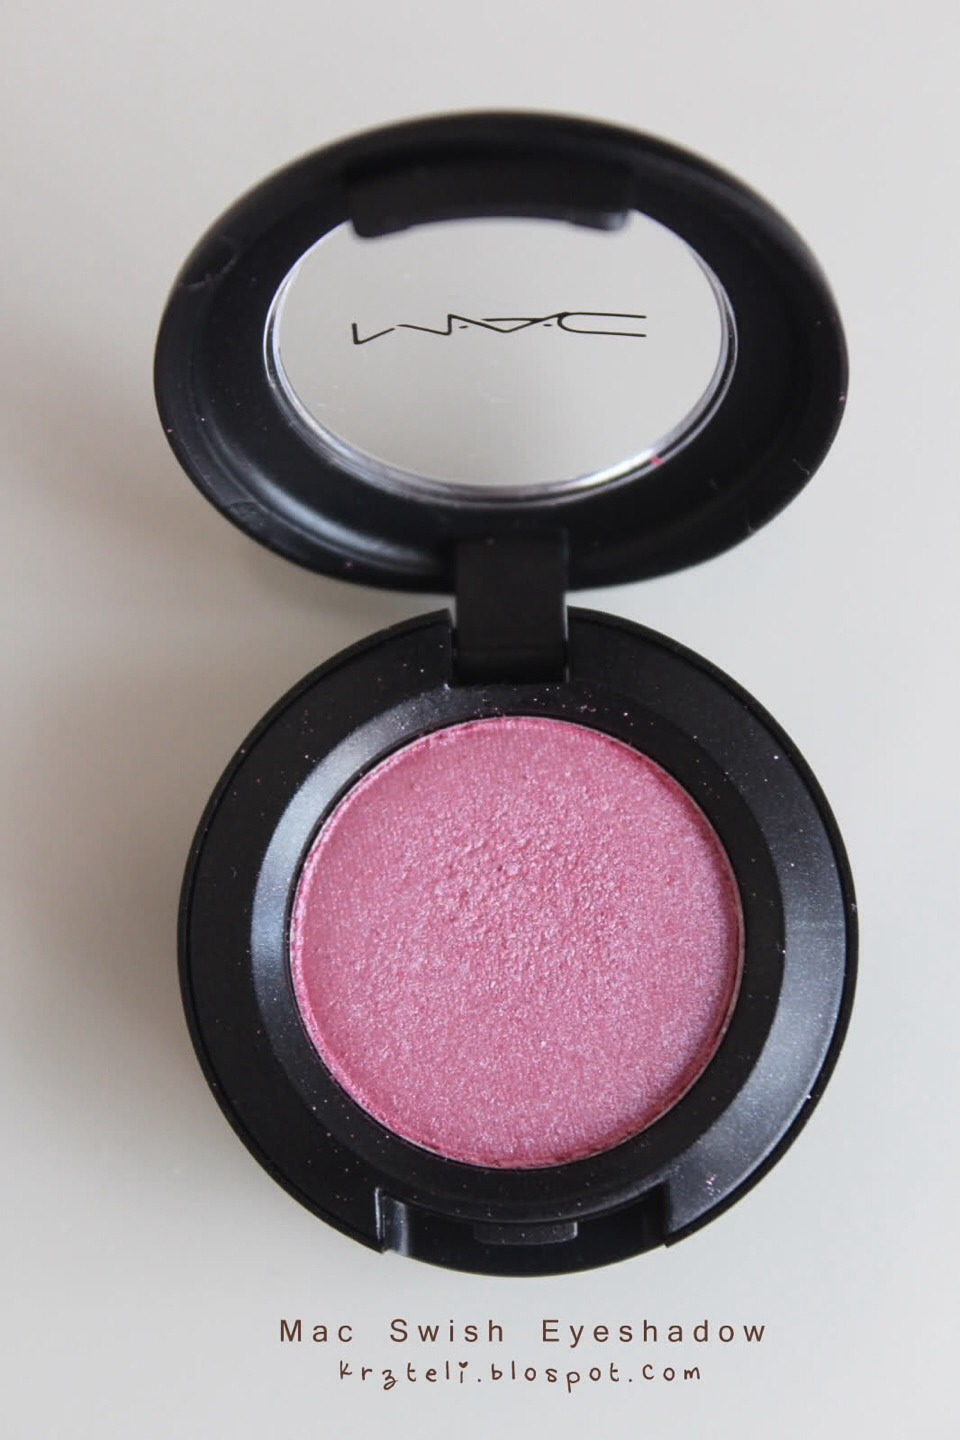 This would be for 1st years nice light pink eye shadow nice and light